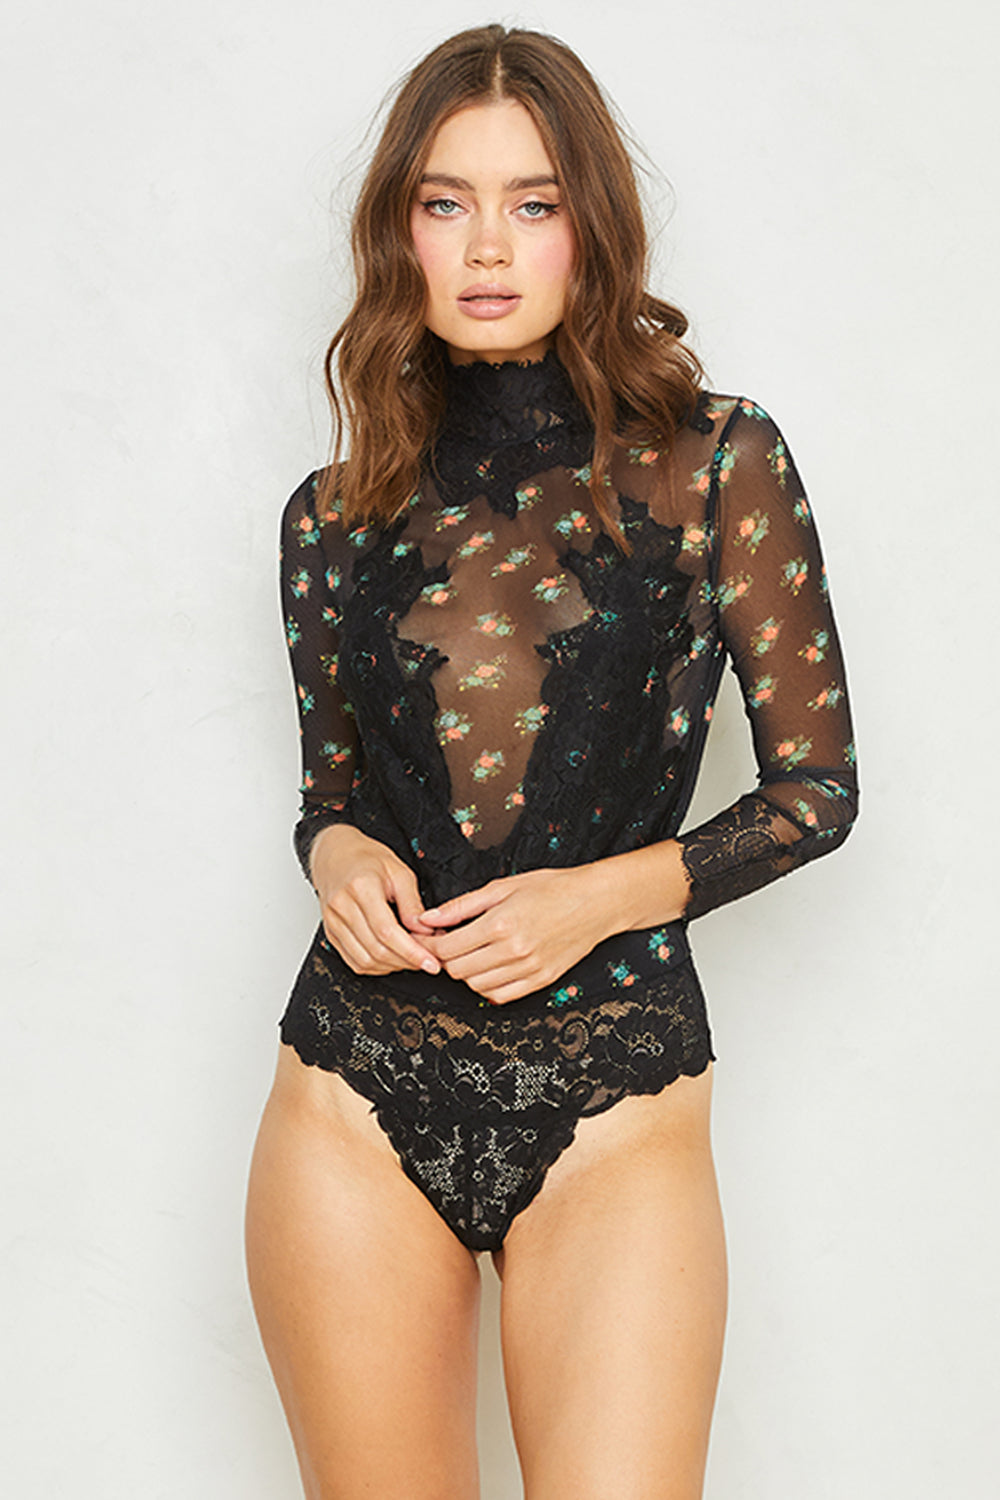 black floral print reversible vintage inspired mesh and lace high neck bodysuit